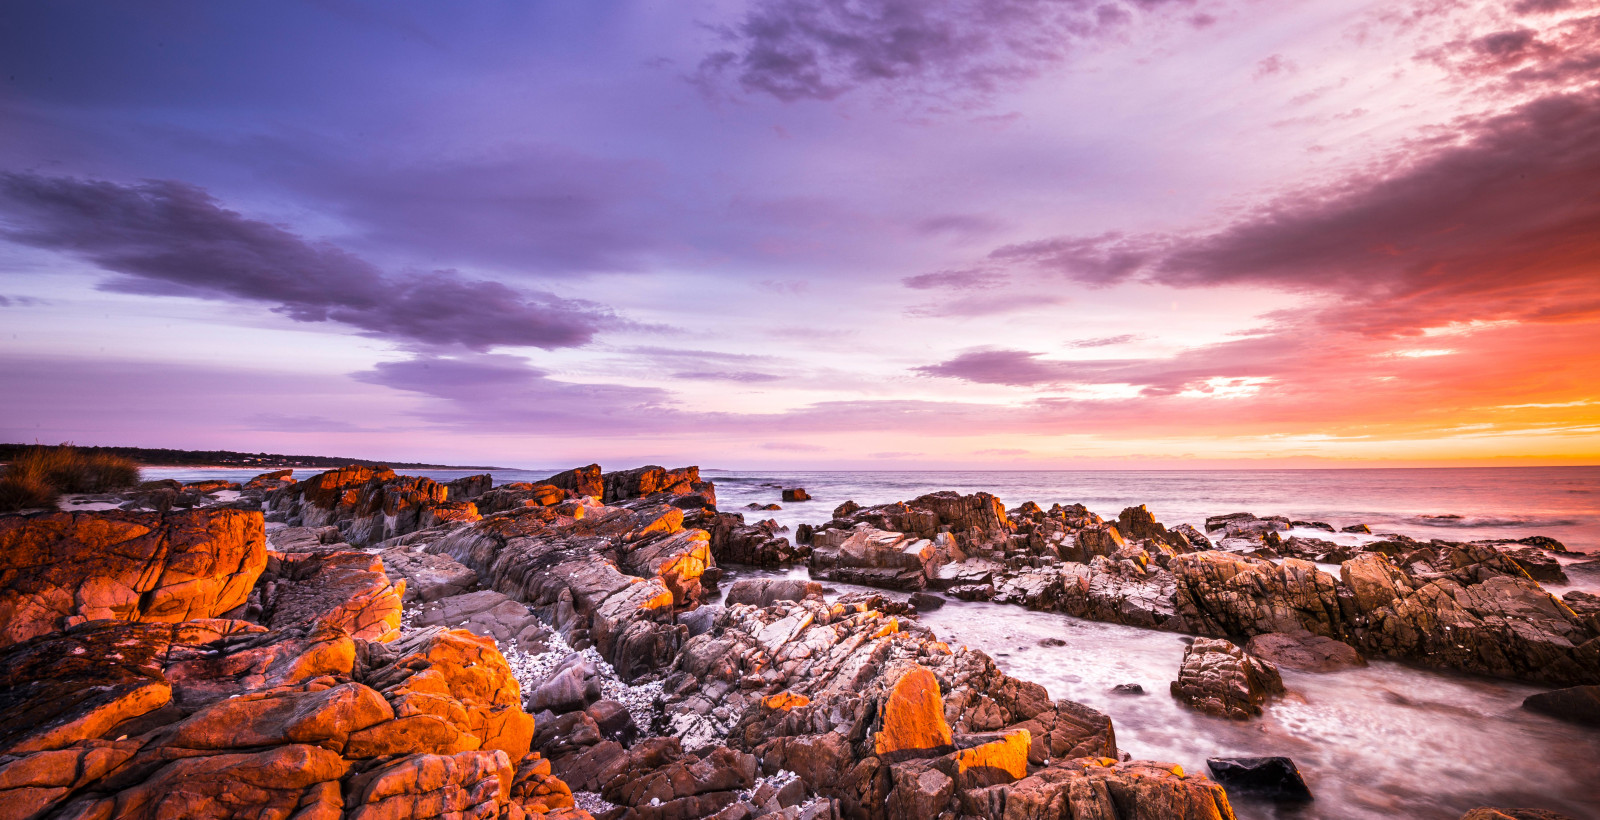 Bay of Fires GettyImages 854762162